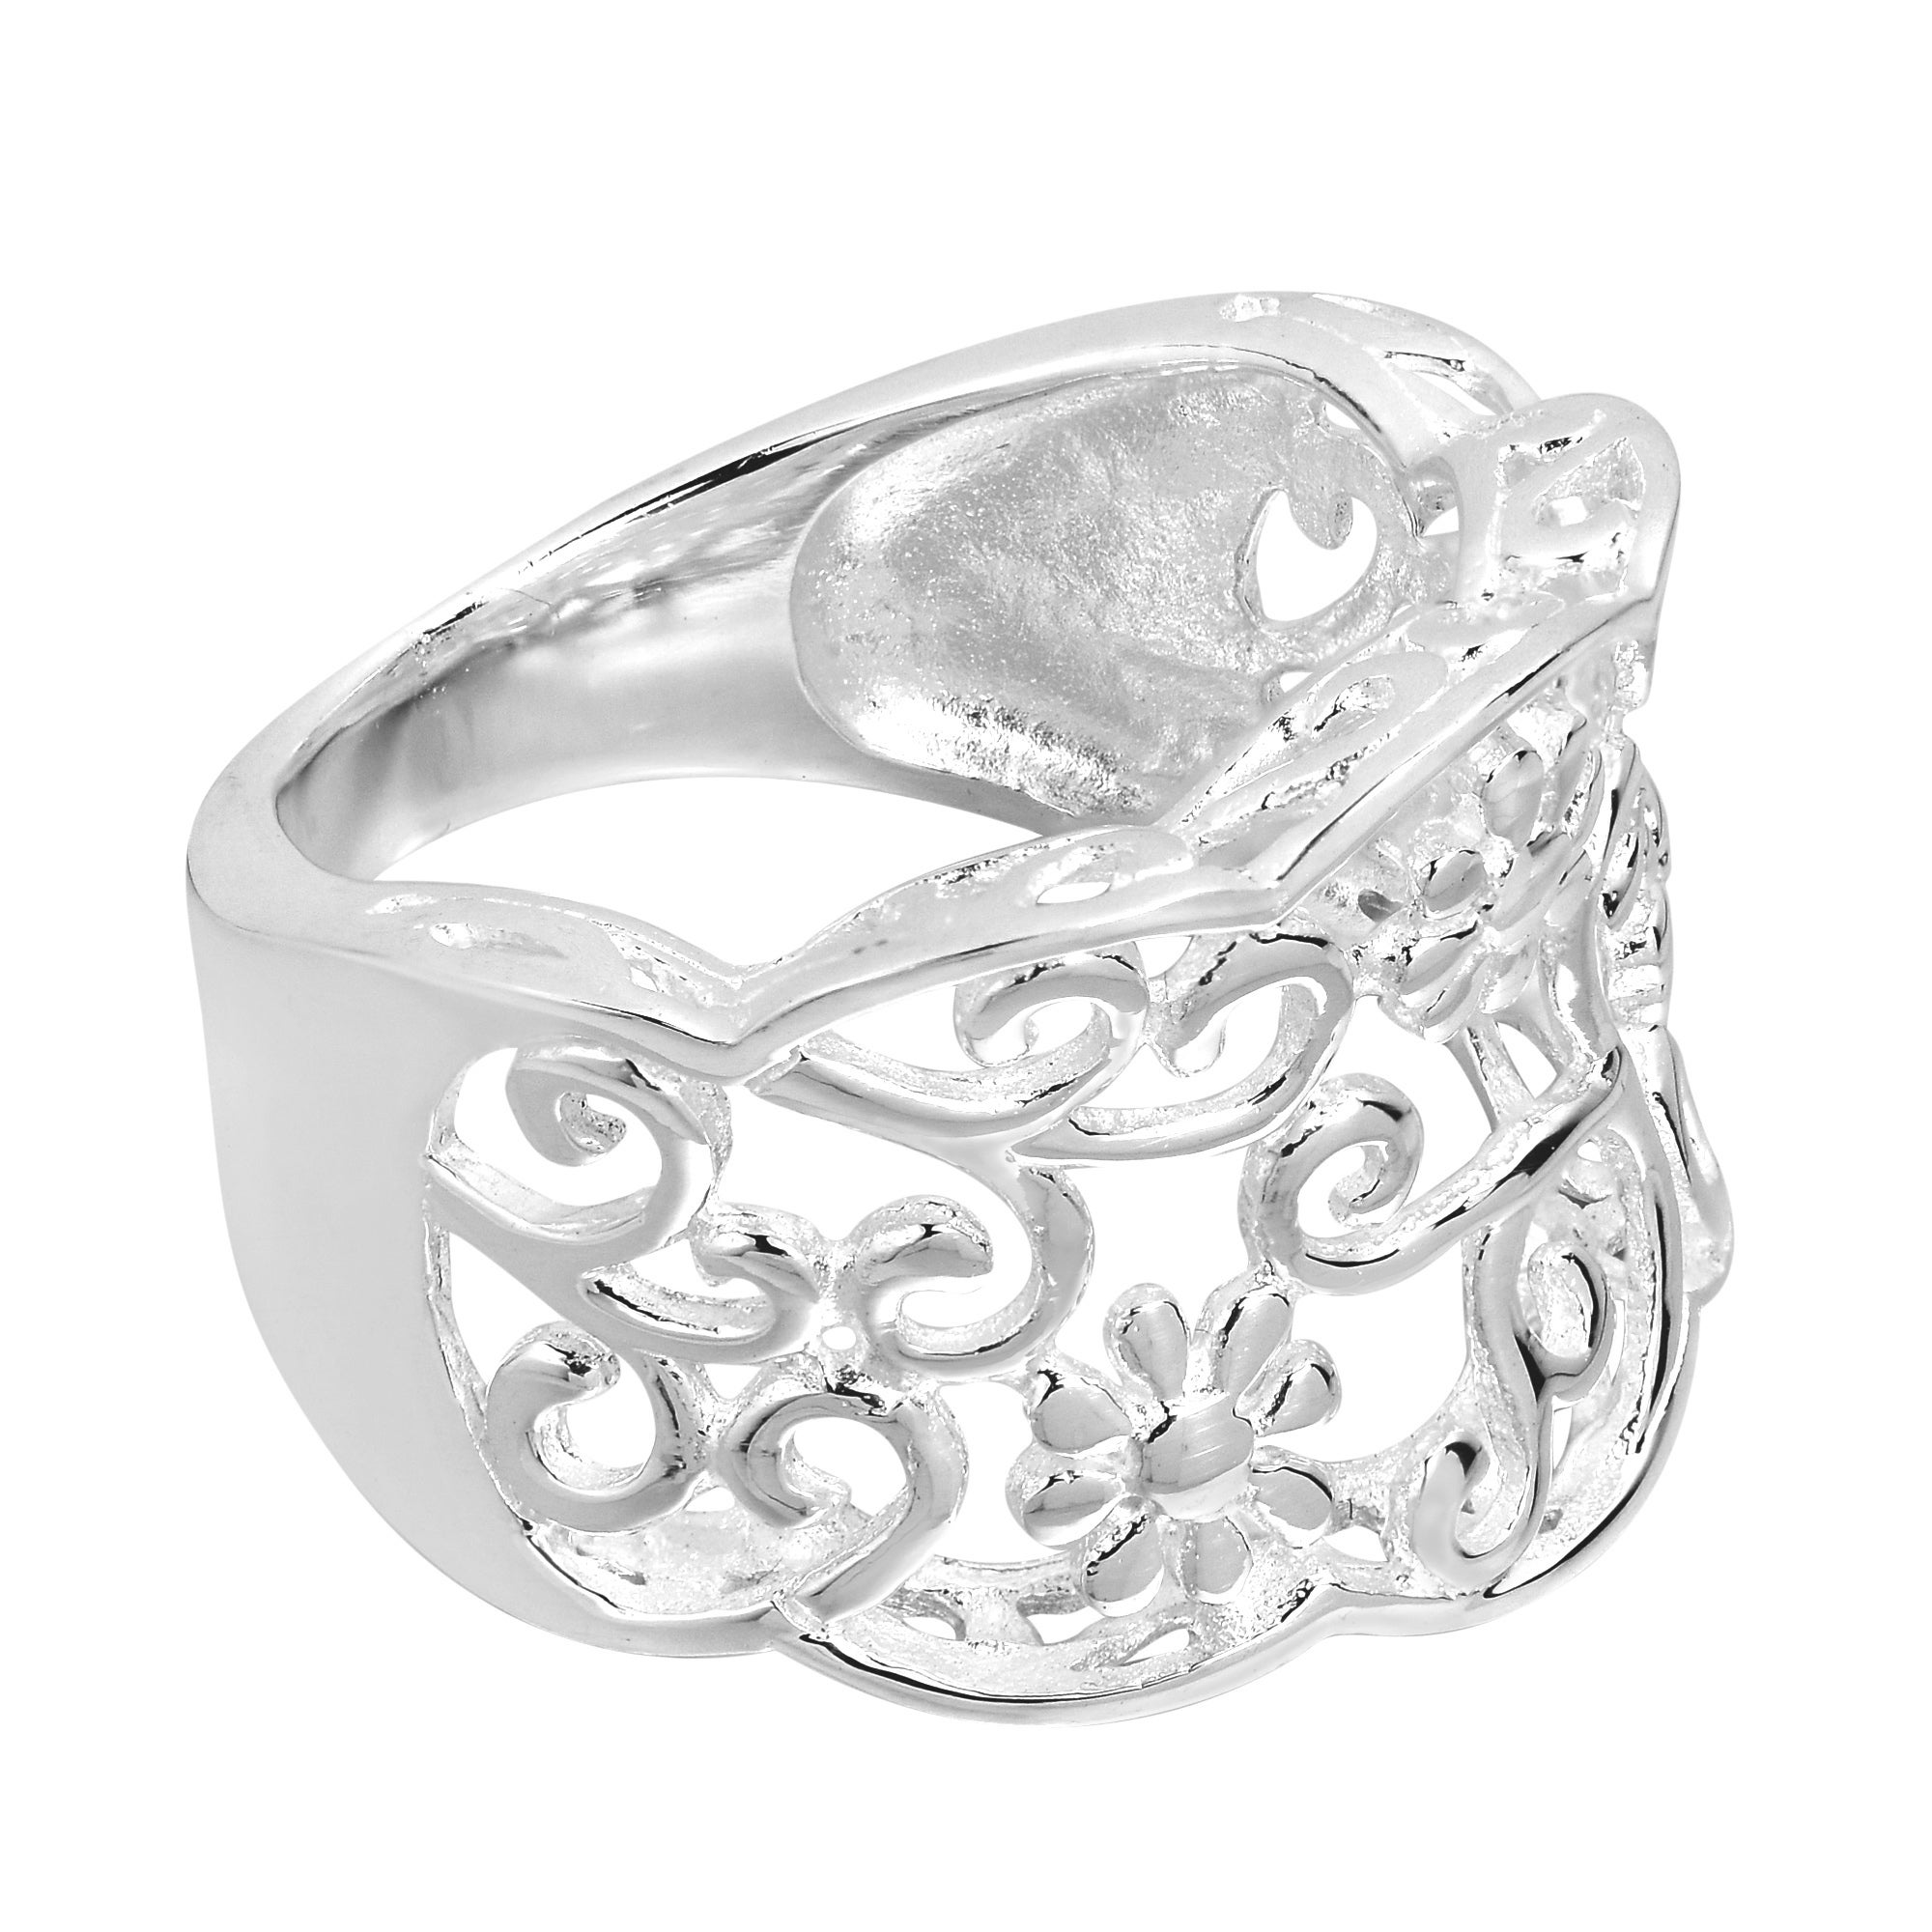 sterling prongs jewelry cabochon gallery pomellato rings product marcasite lyst silver in ringmarcasite ring